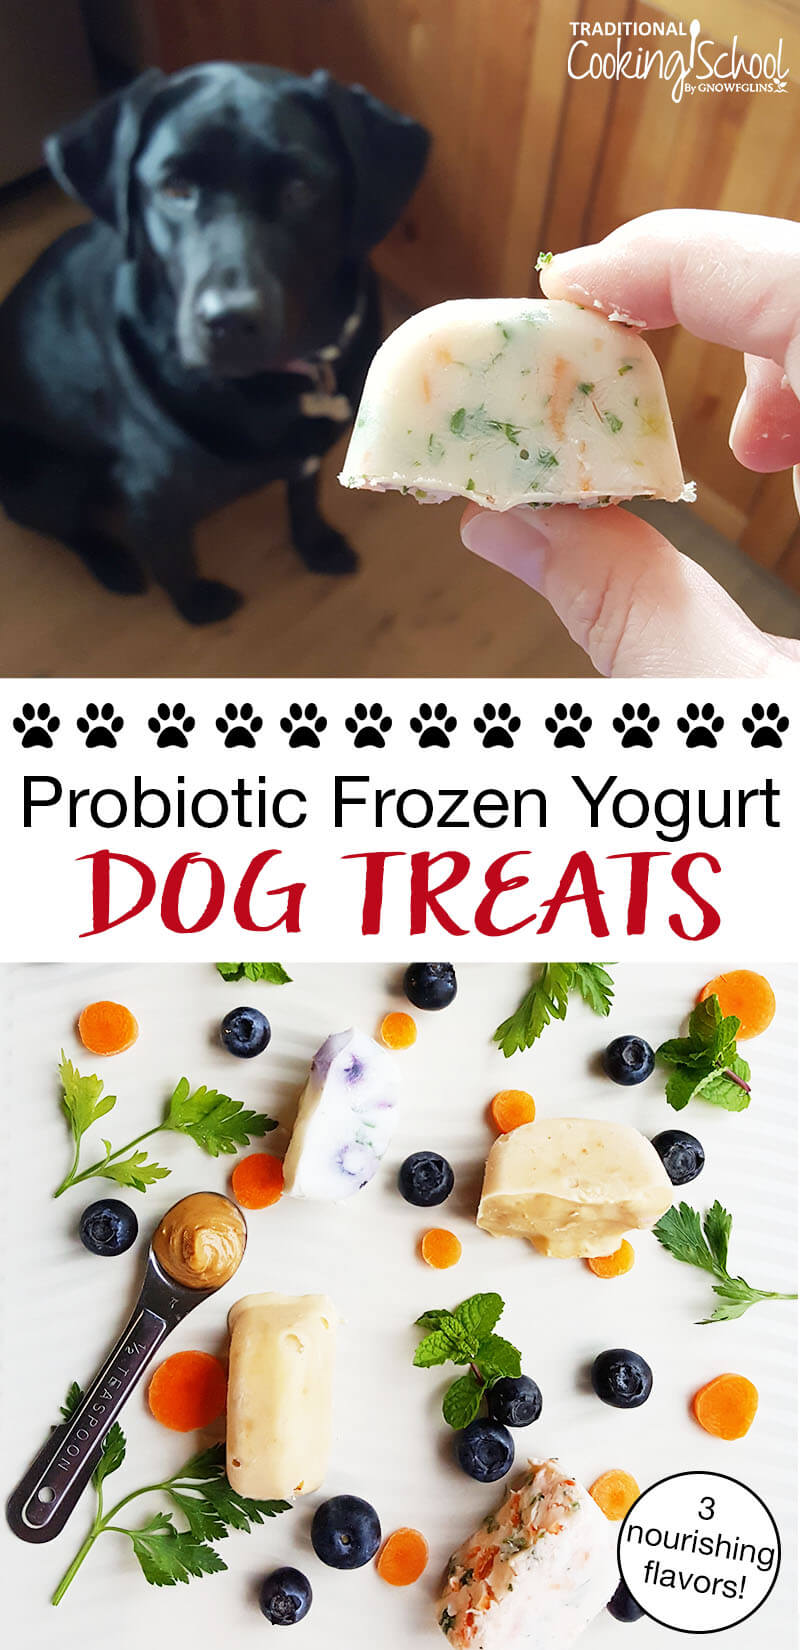 probiotic frozen yogurt dog treats with black lab and fresh blueberries and parsley